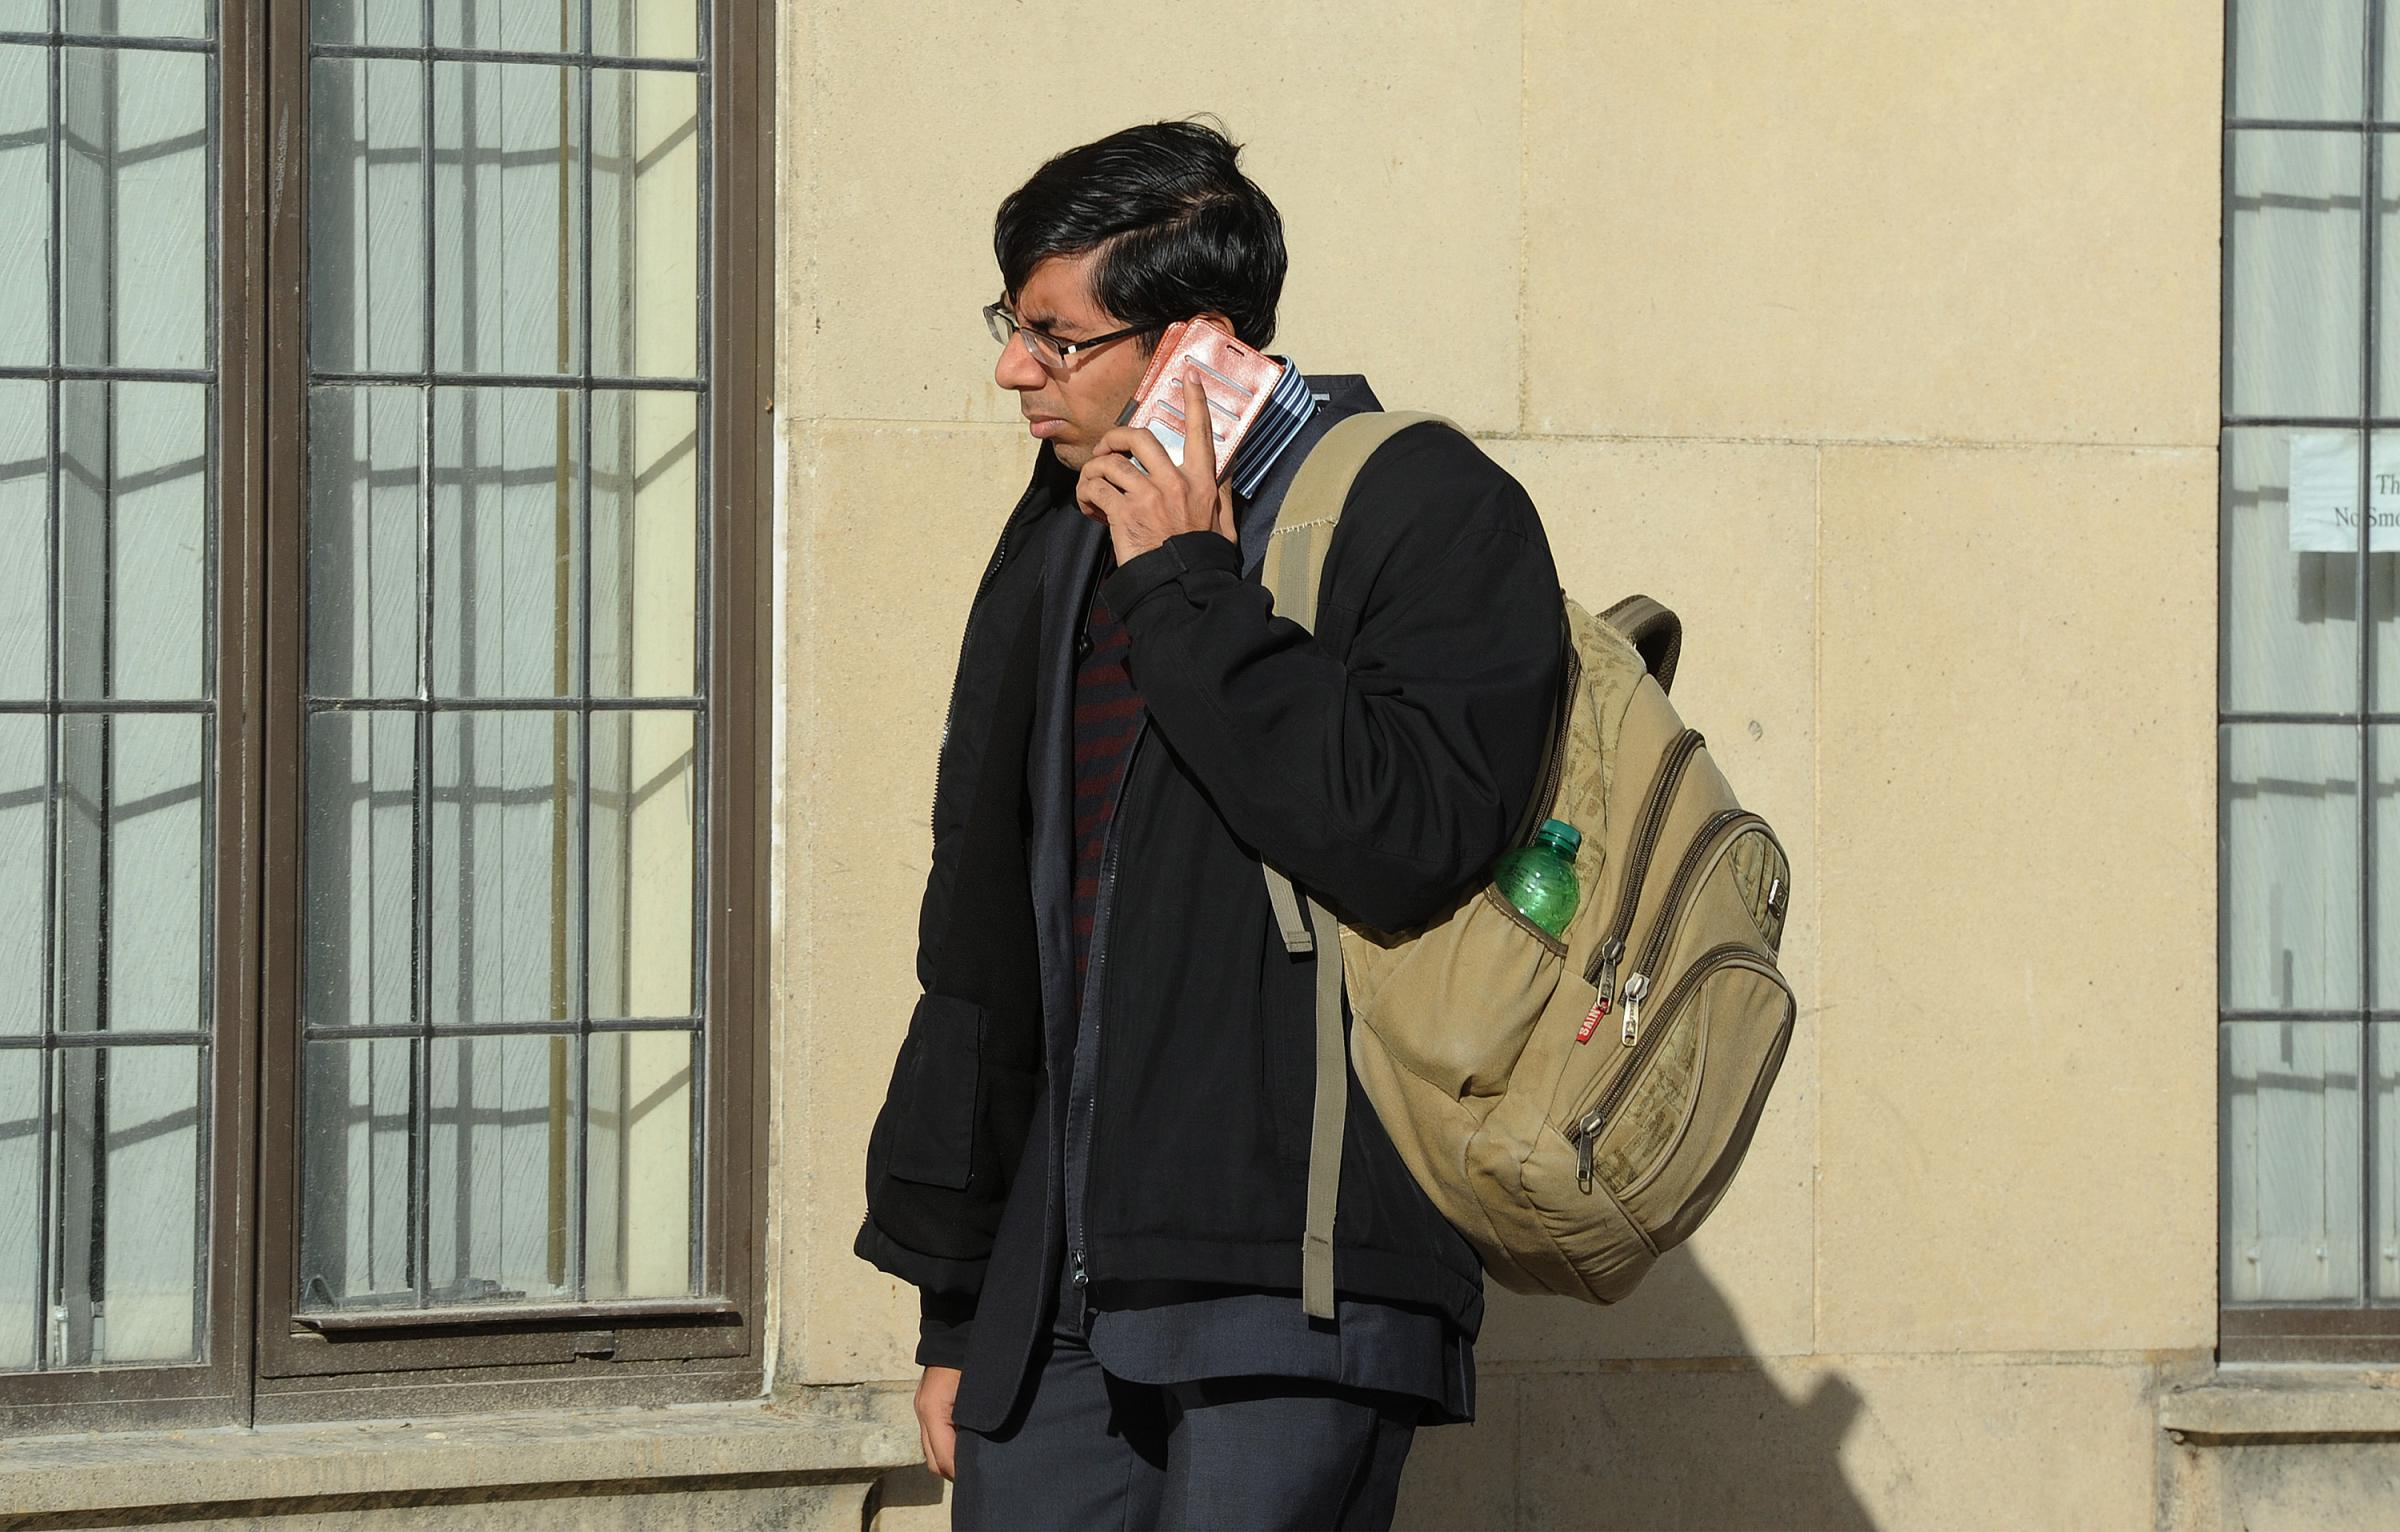 Dr. Anandagopal Srinivasan, 26, arriving at Oxford Crown Court where he faced charges of sexual assault.